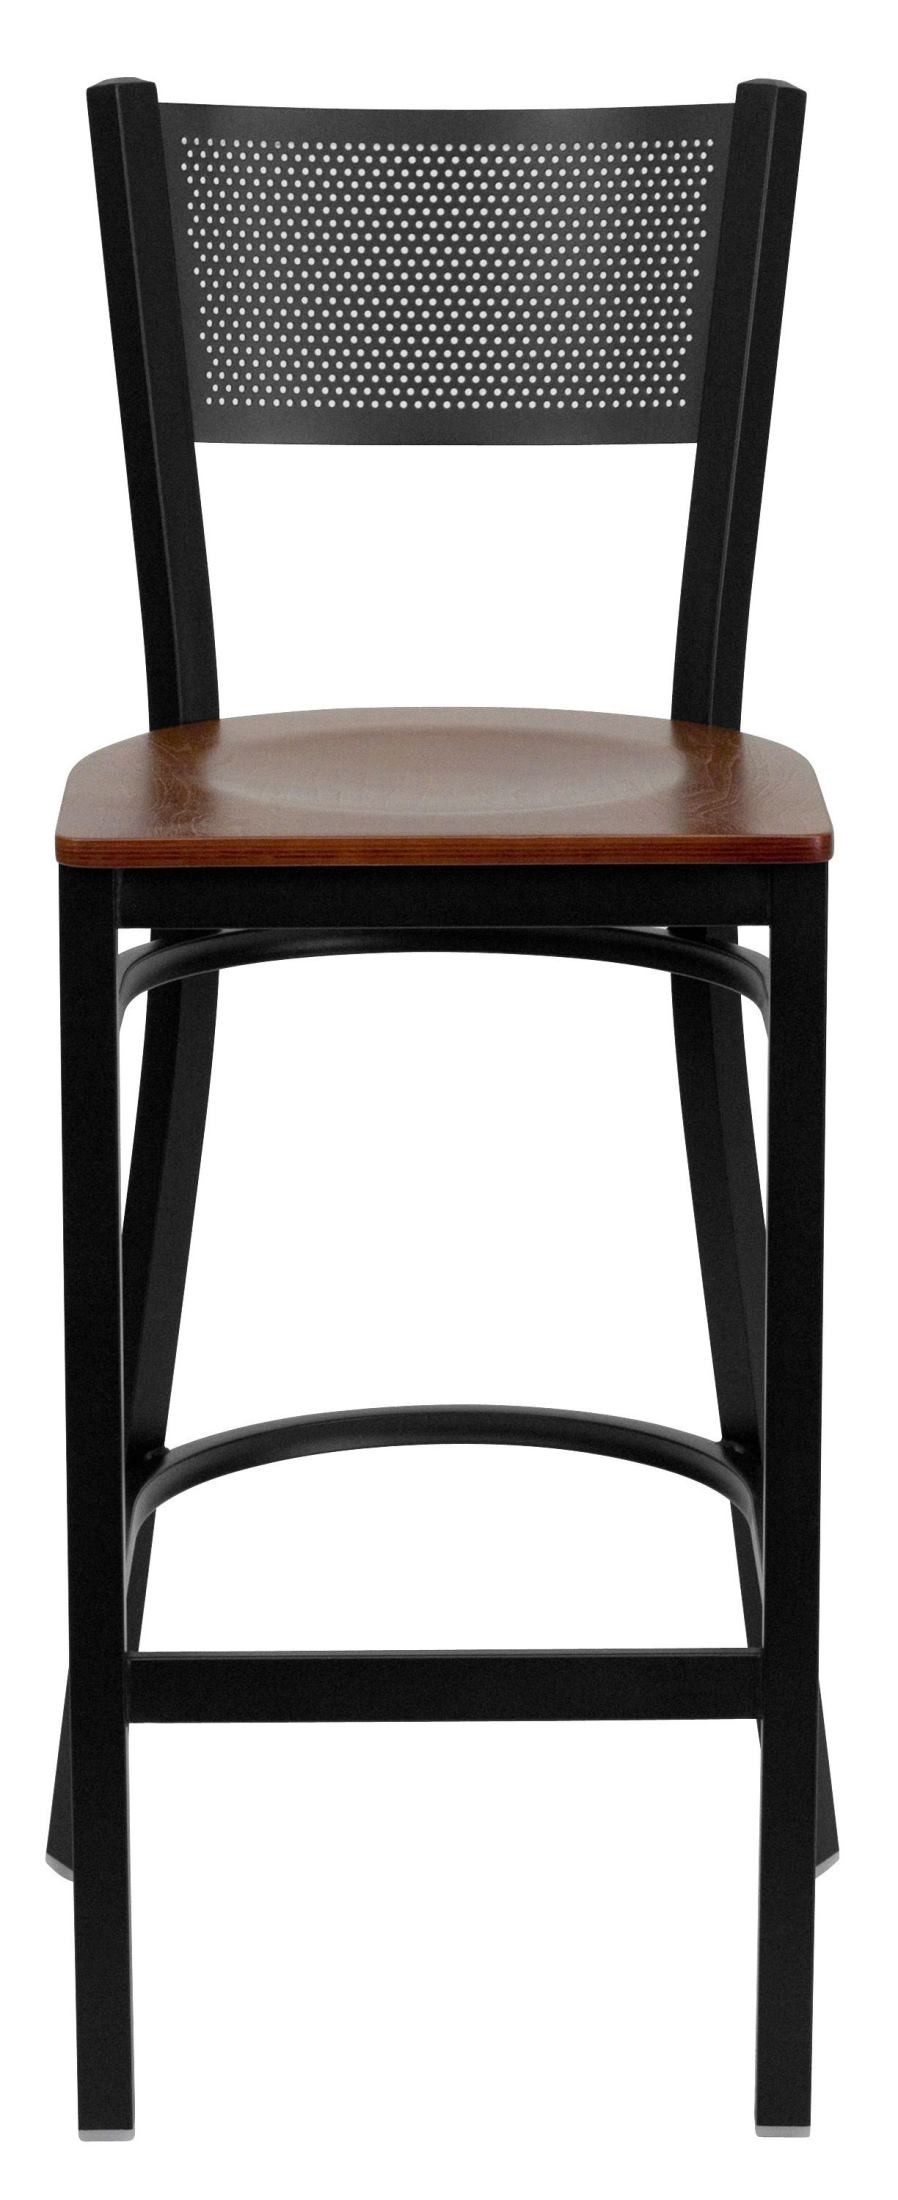 Hercules Series Black Grid Back Cherry Wood Restaurant Bar